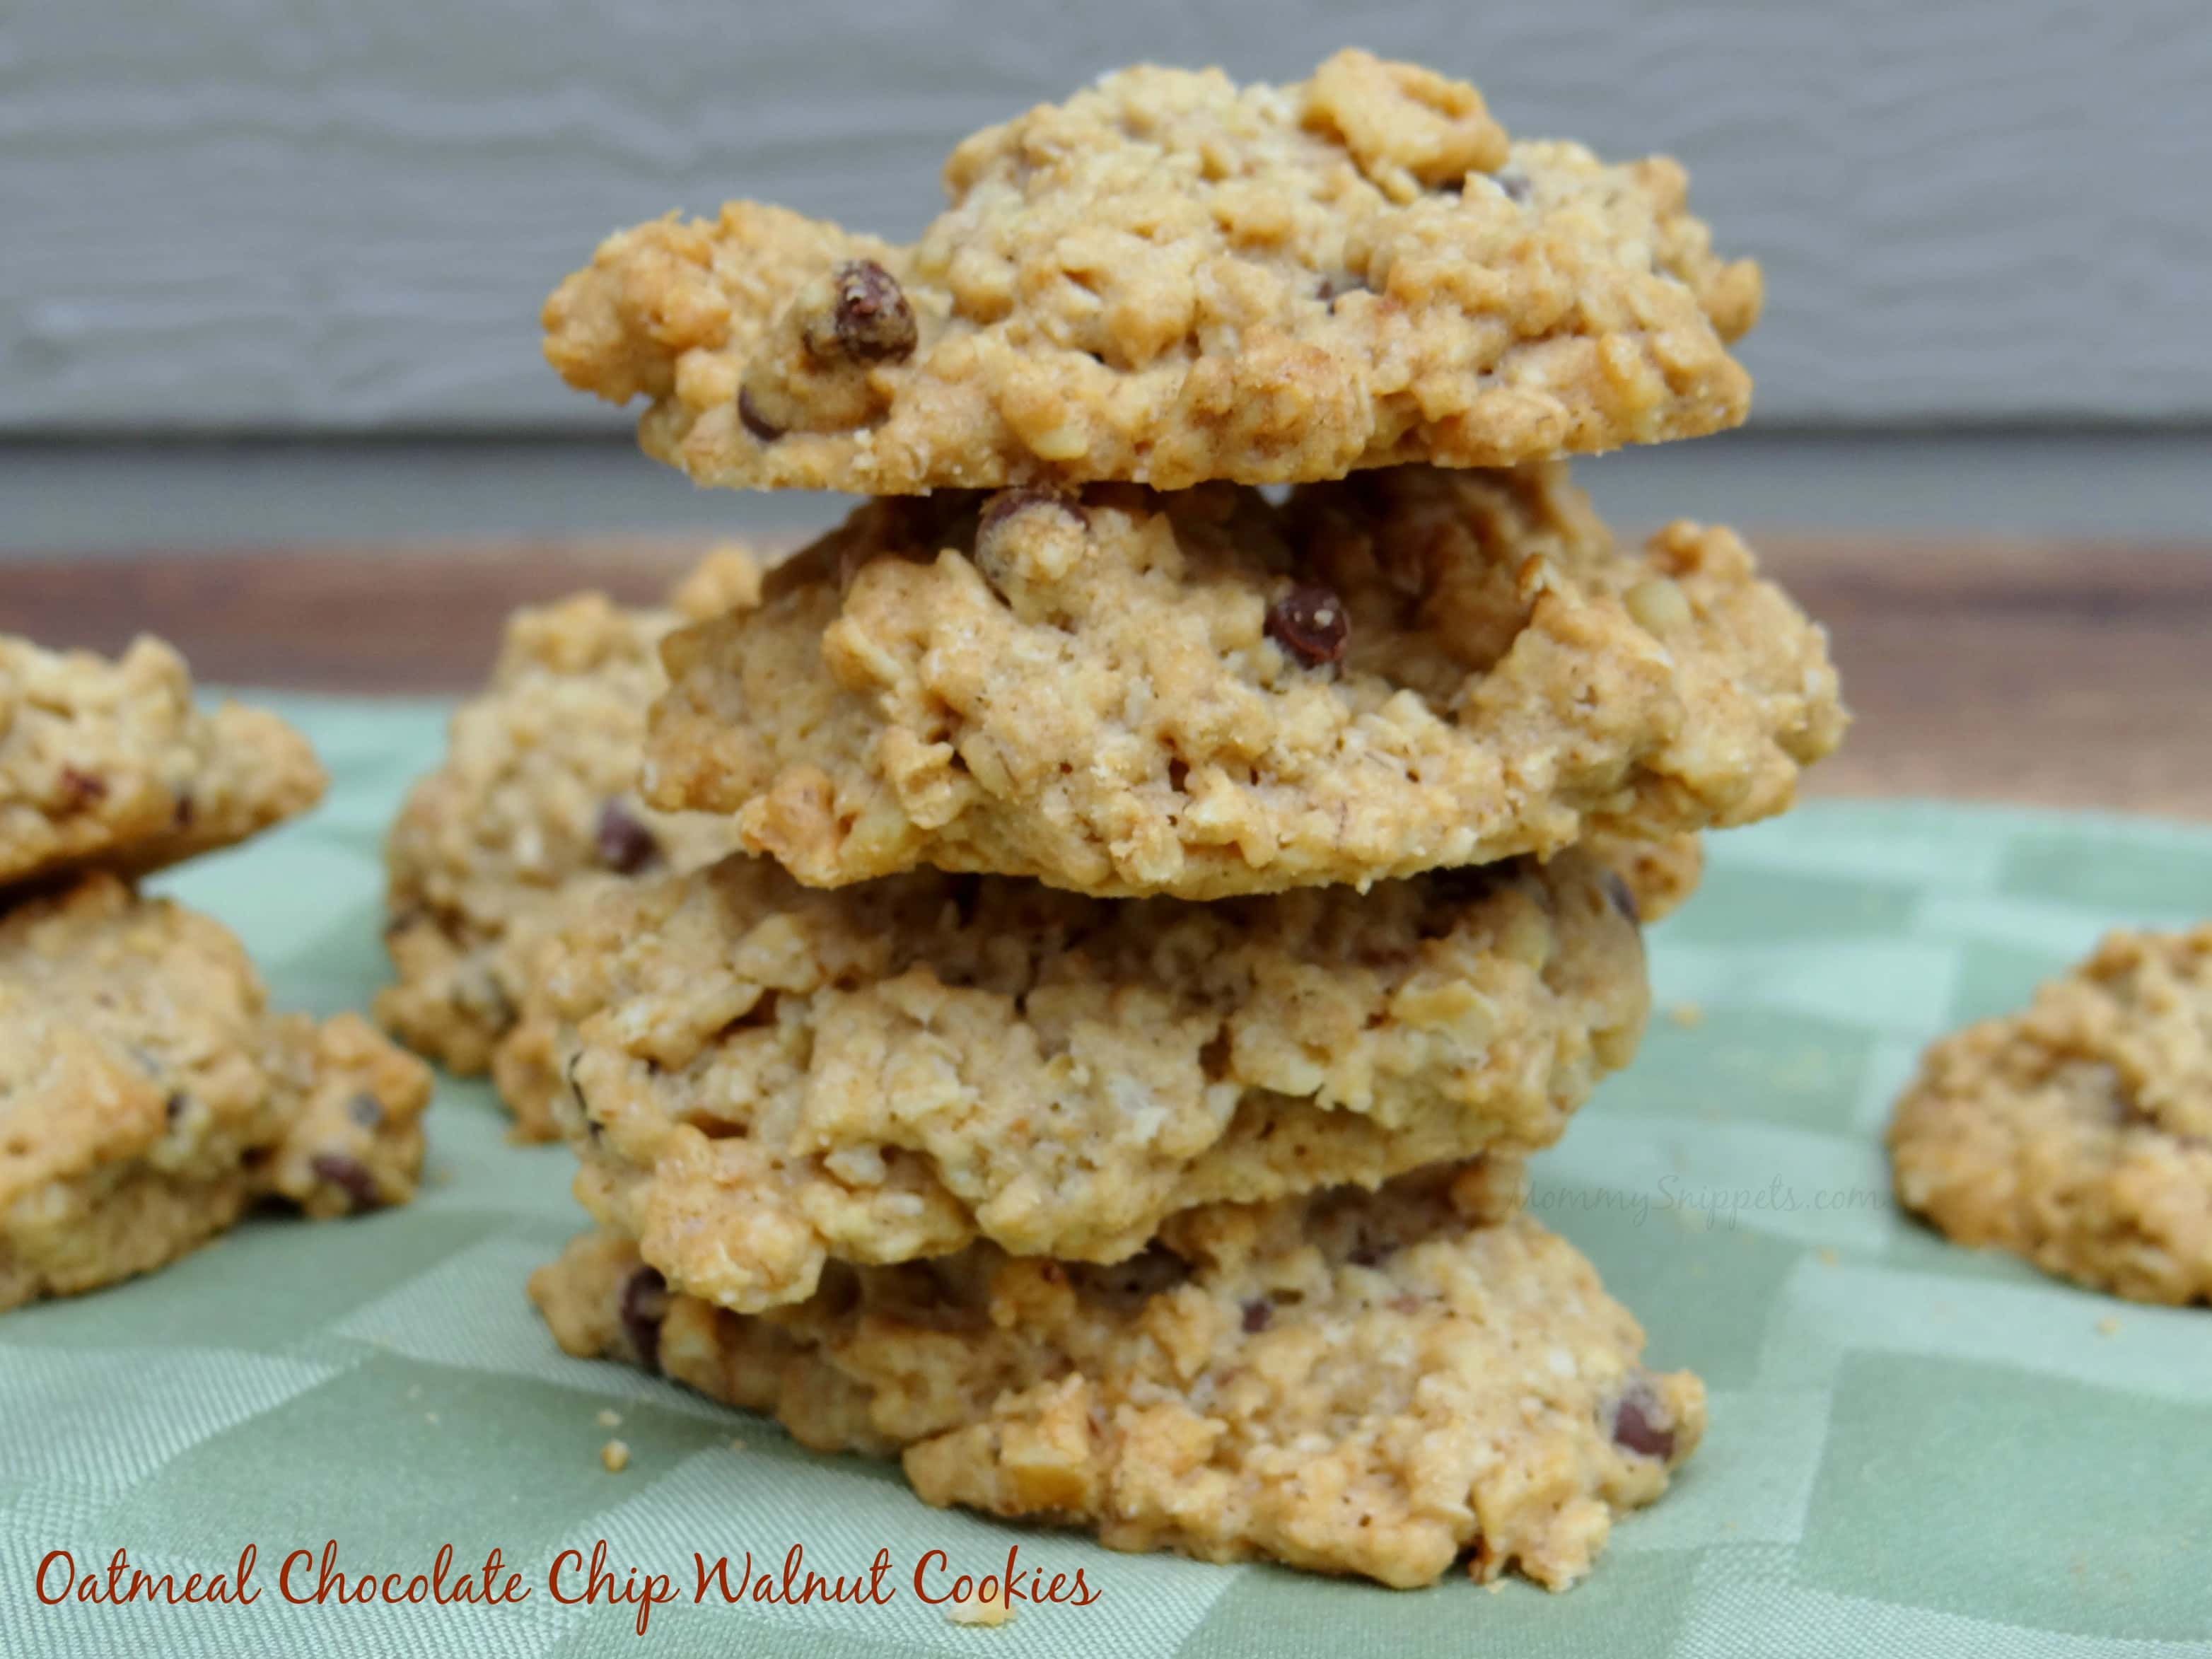 Oatmeal Chocolate Chip Walnut Cookies- MommySnippets